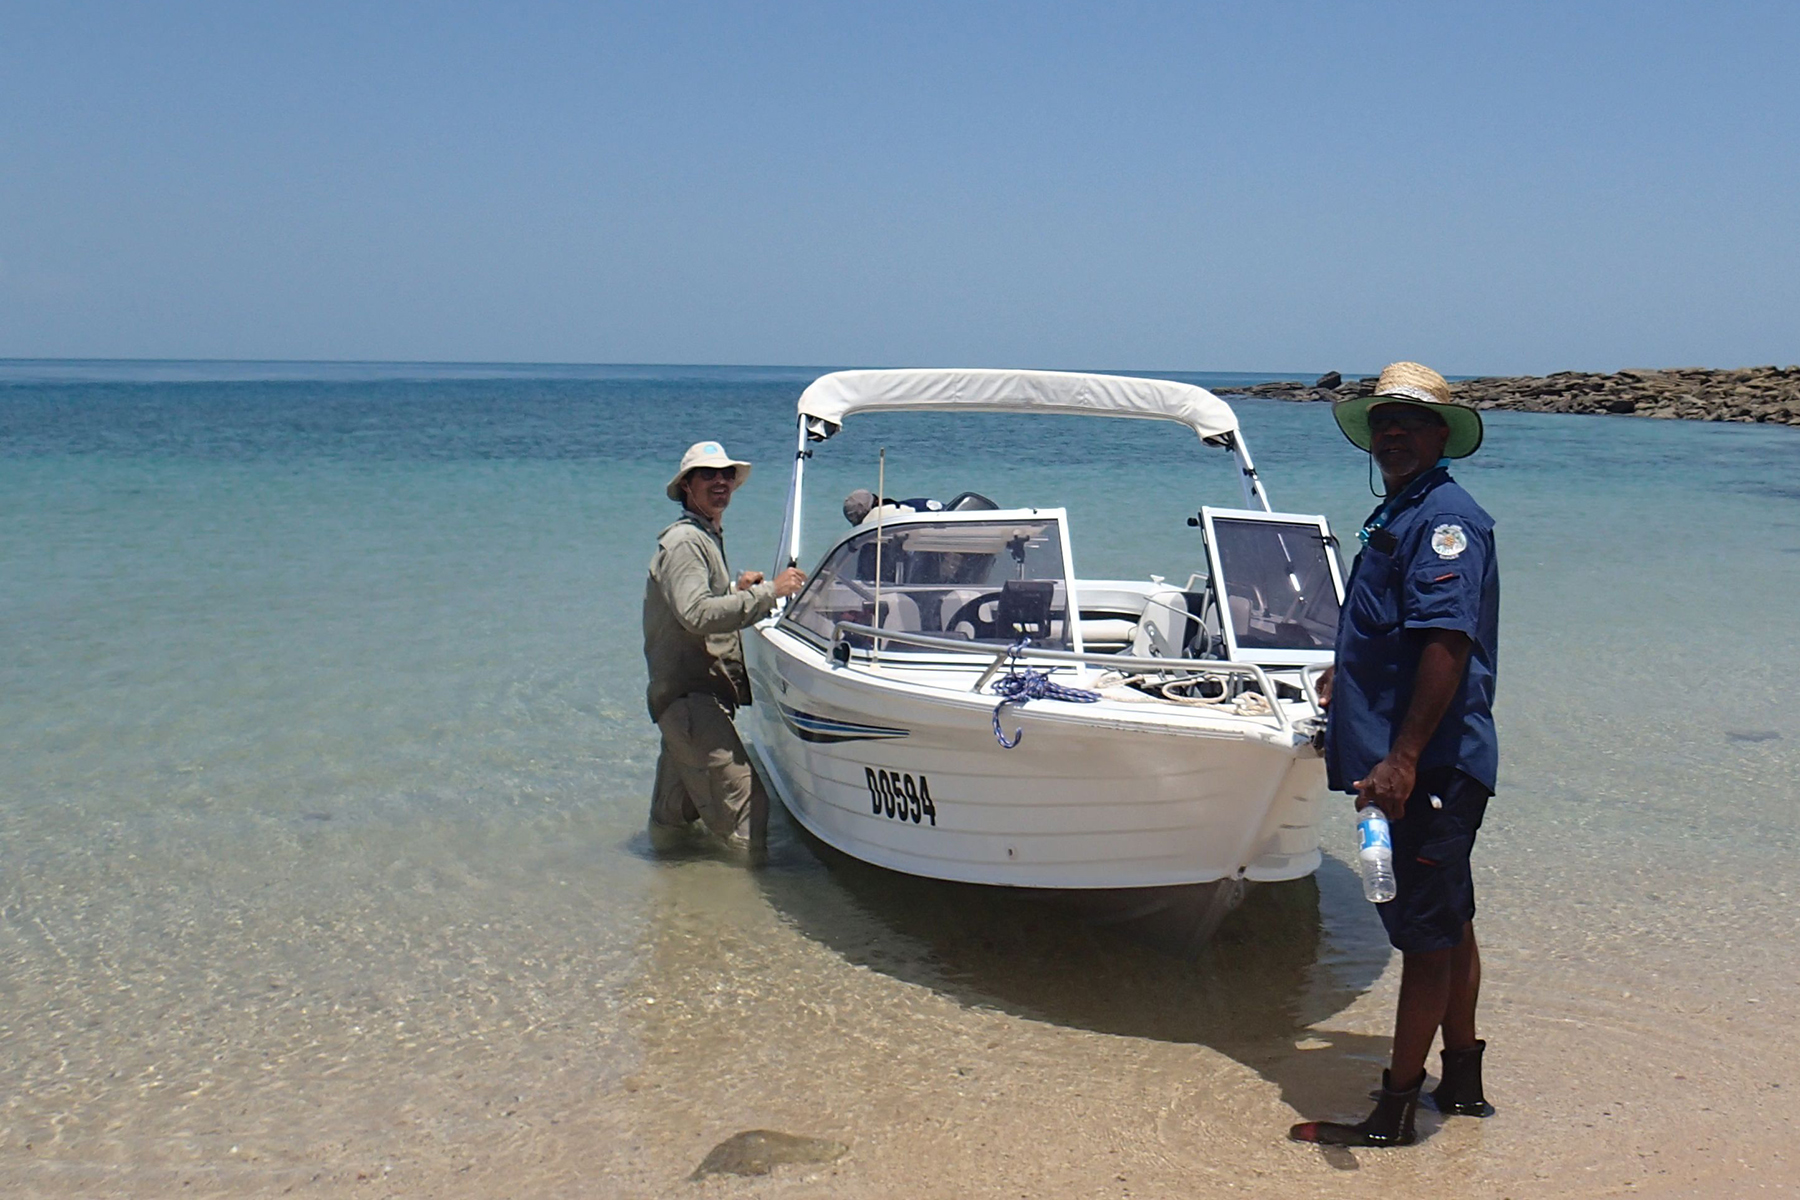 CSIRO scientist stands with an indigenous ranger infront of boat on the shore